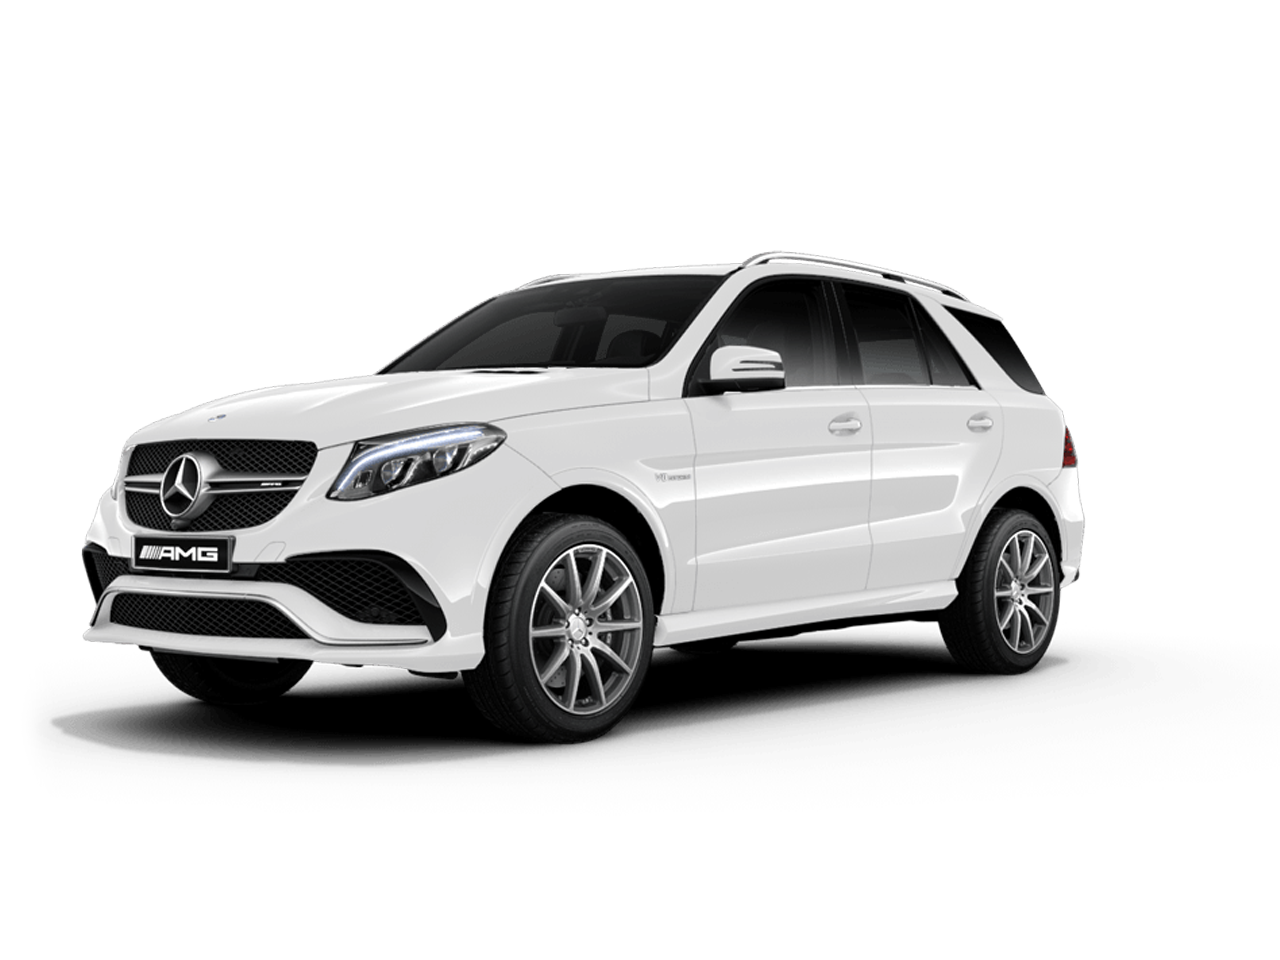 2016 mercedes benz gle 350 suv. Black Bedroom Furniture Sets. Home Design Ideas